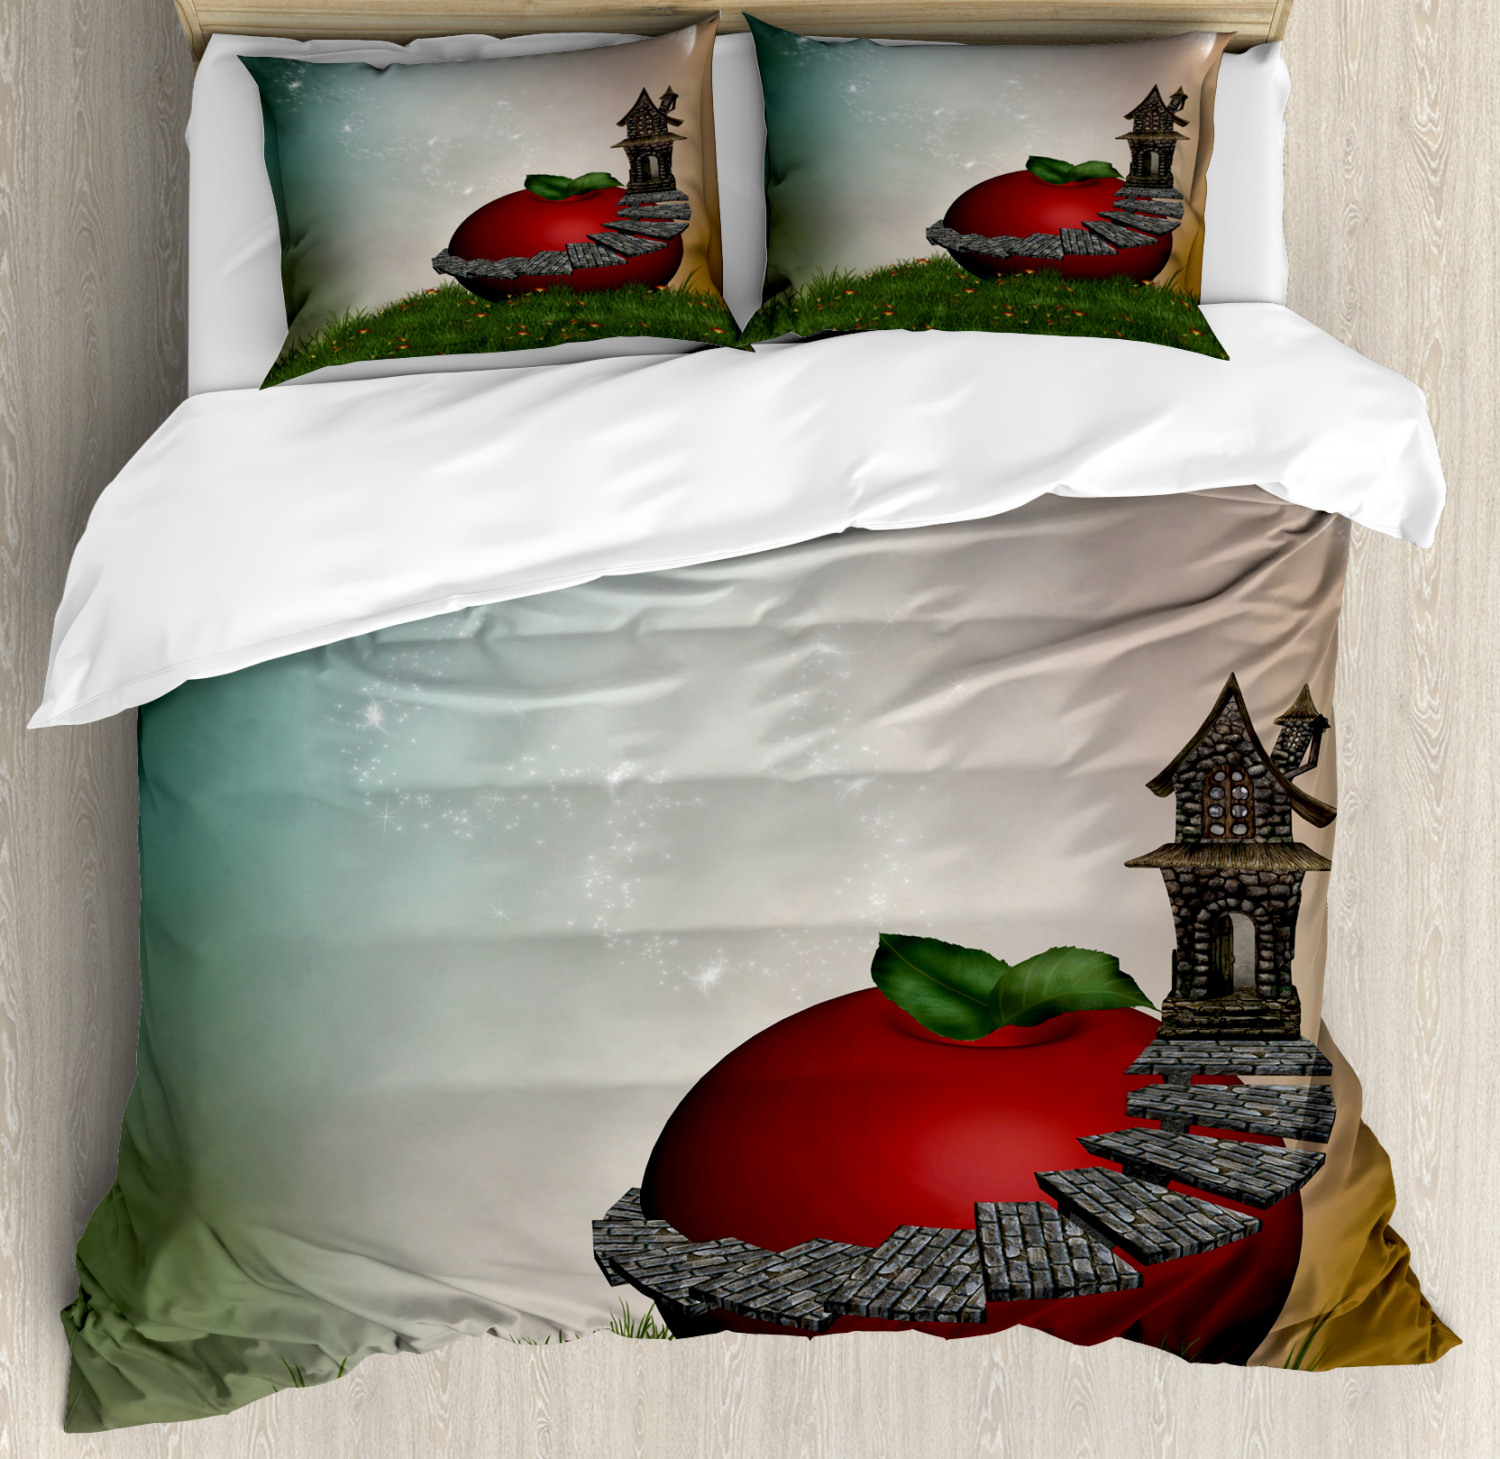 Fantasy Duvet Cover Set with Pillow Shams Magic Apple with House Print